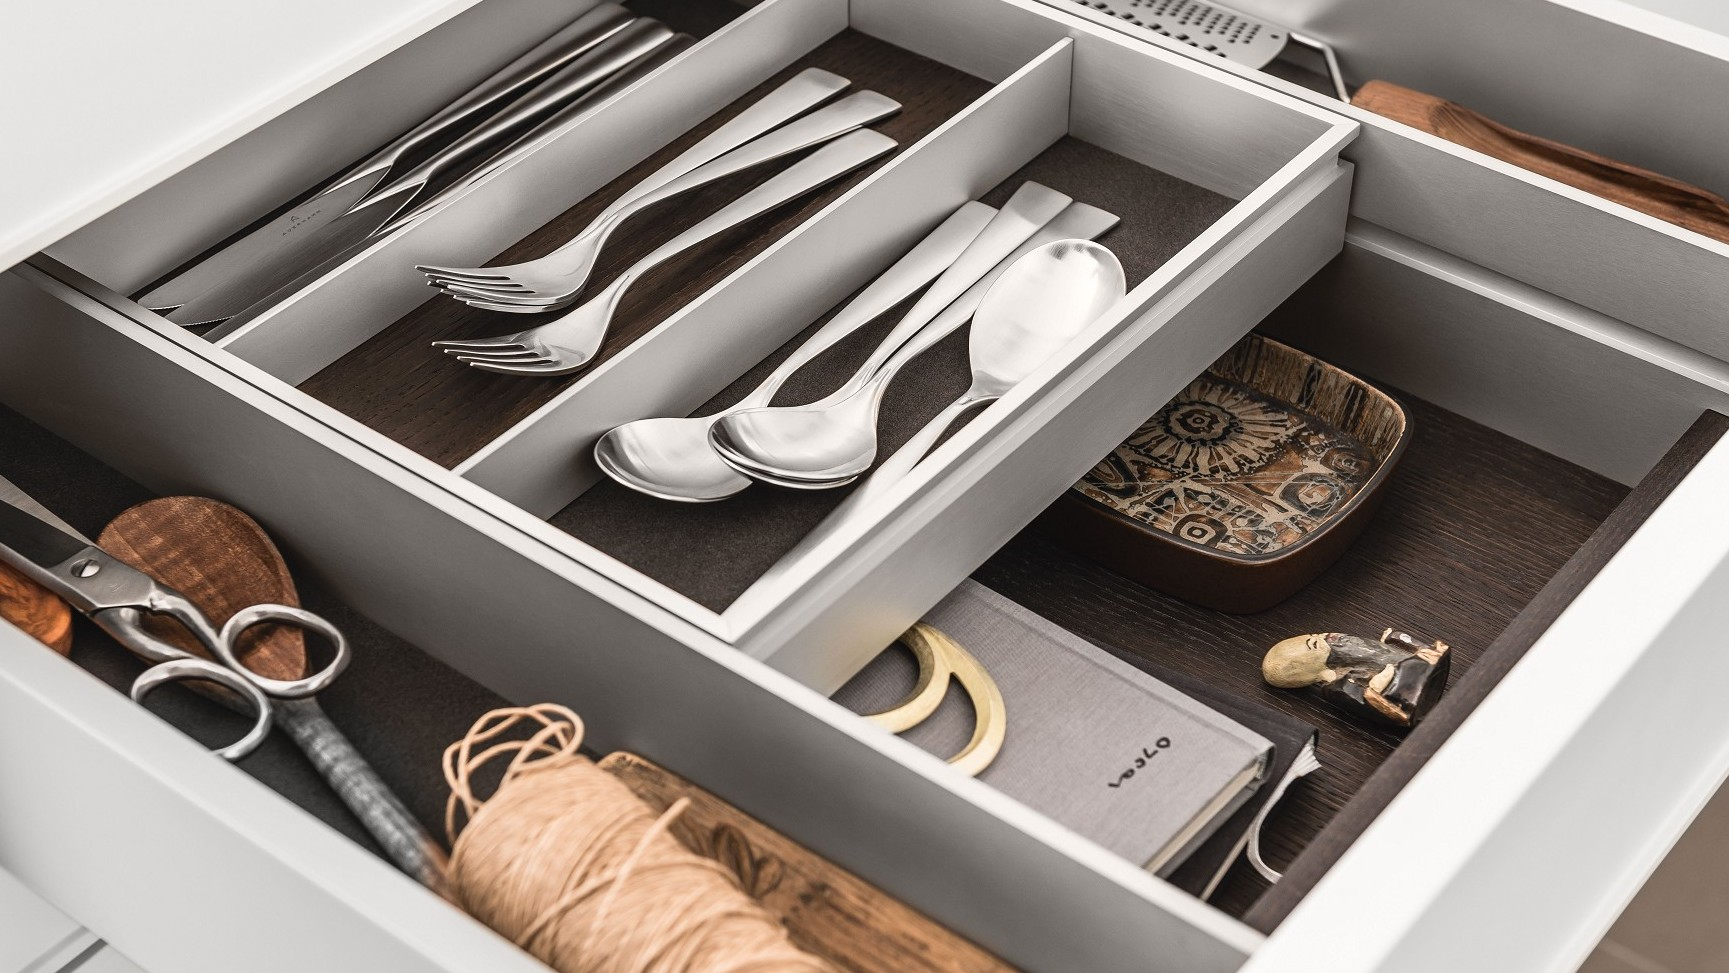 kitchen drawer kohler faucets parts interior accessories by siematic individual innovative a bi level elegantly doubles storage space in drawers and pull